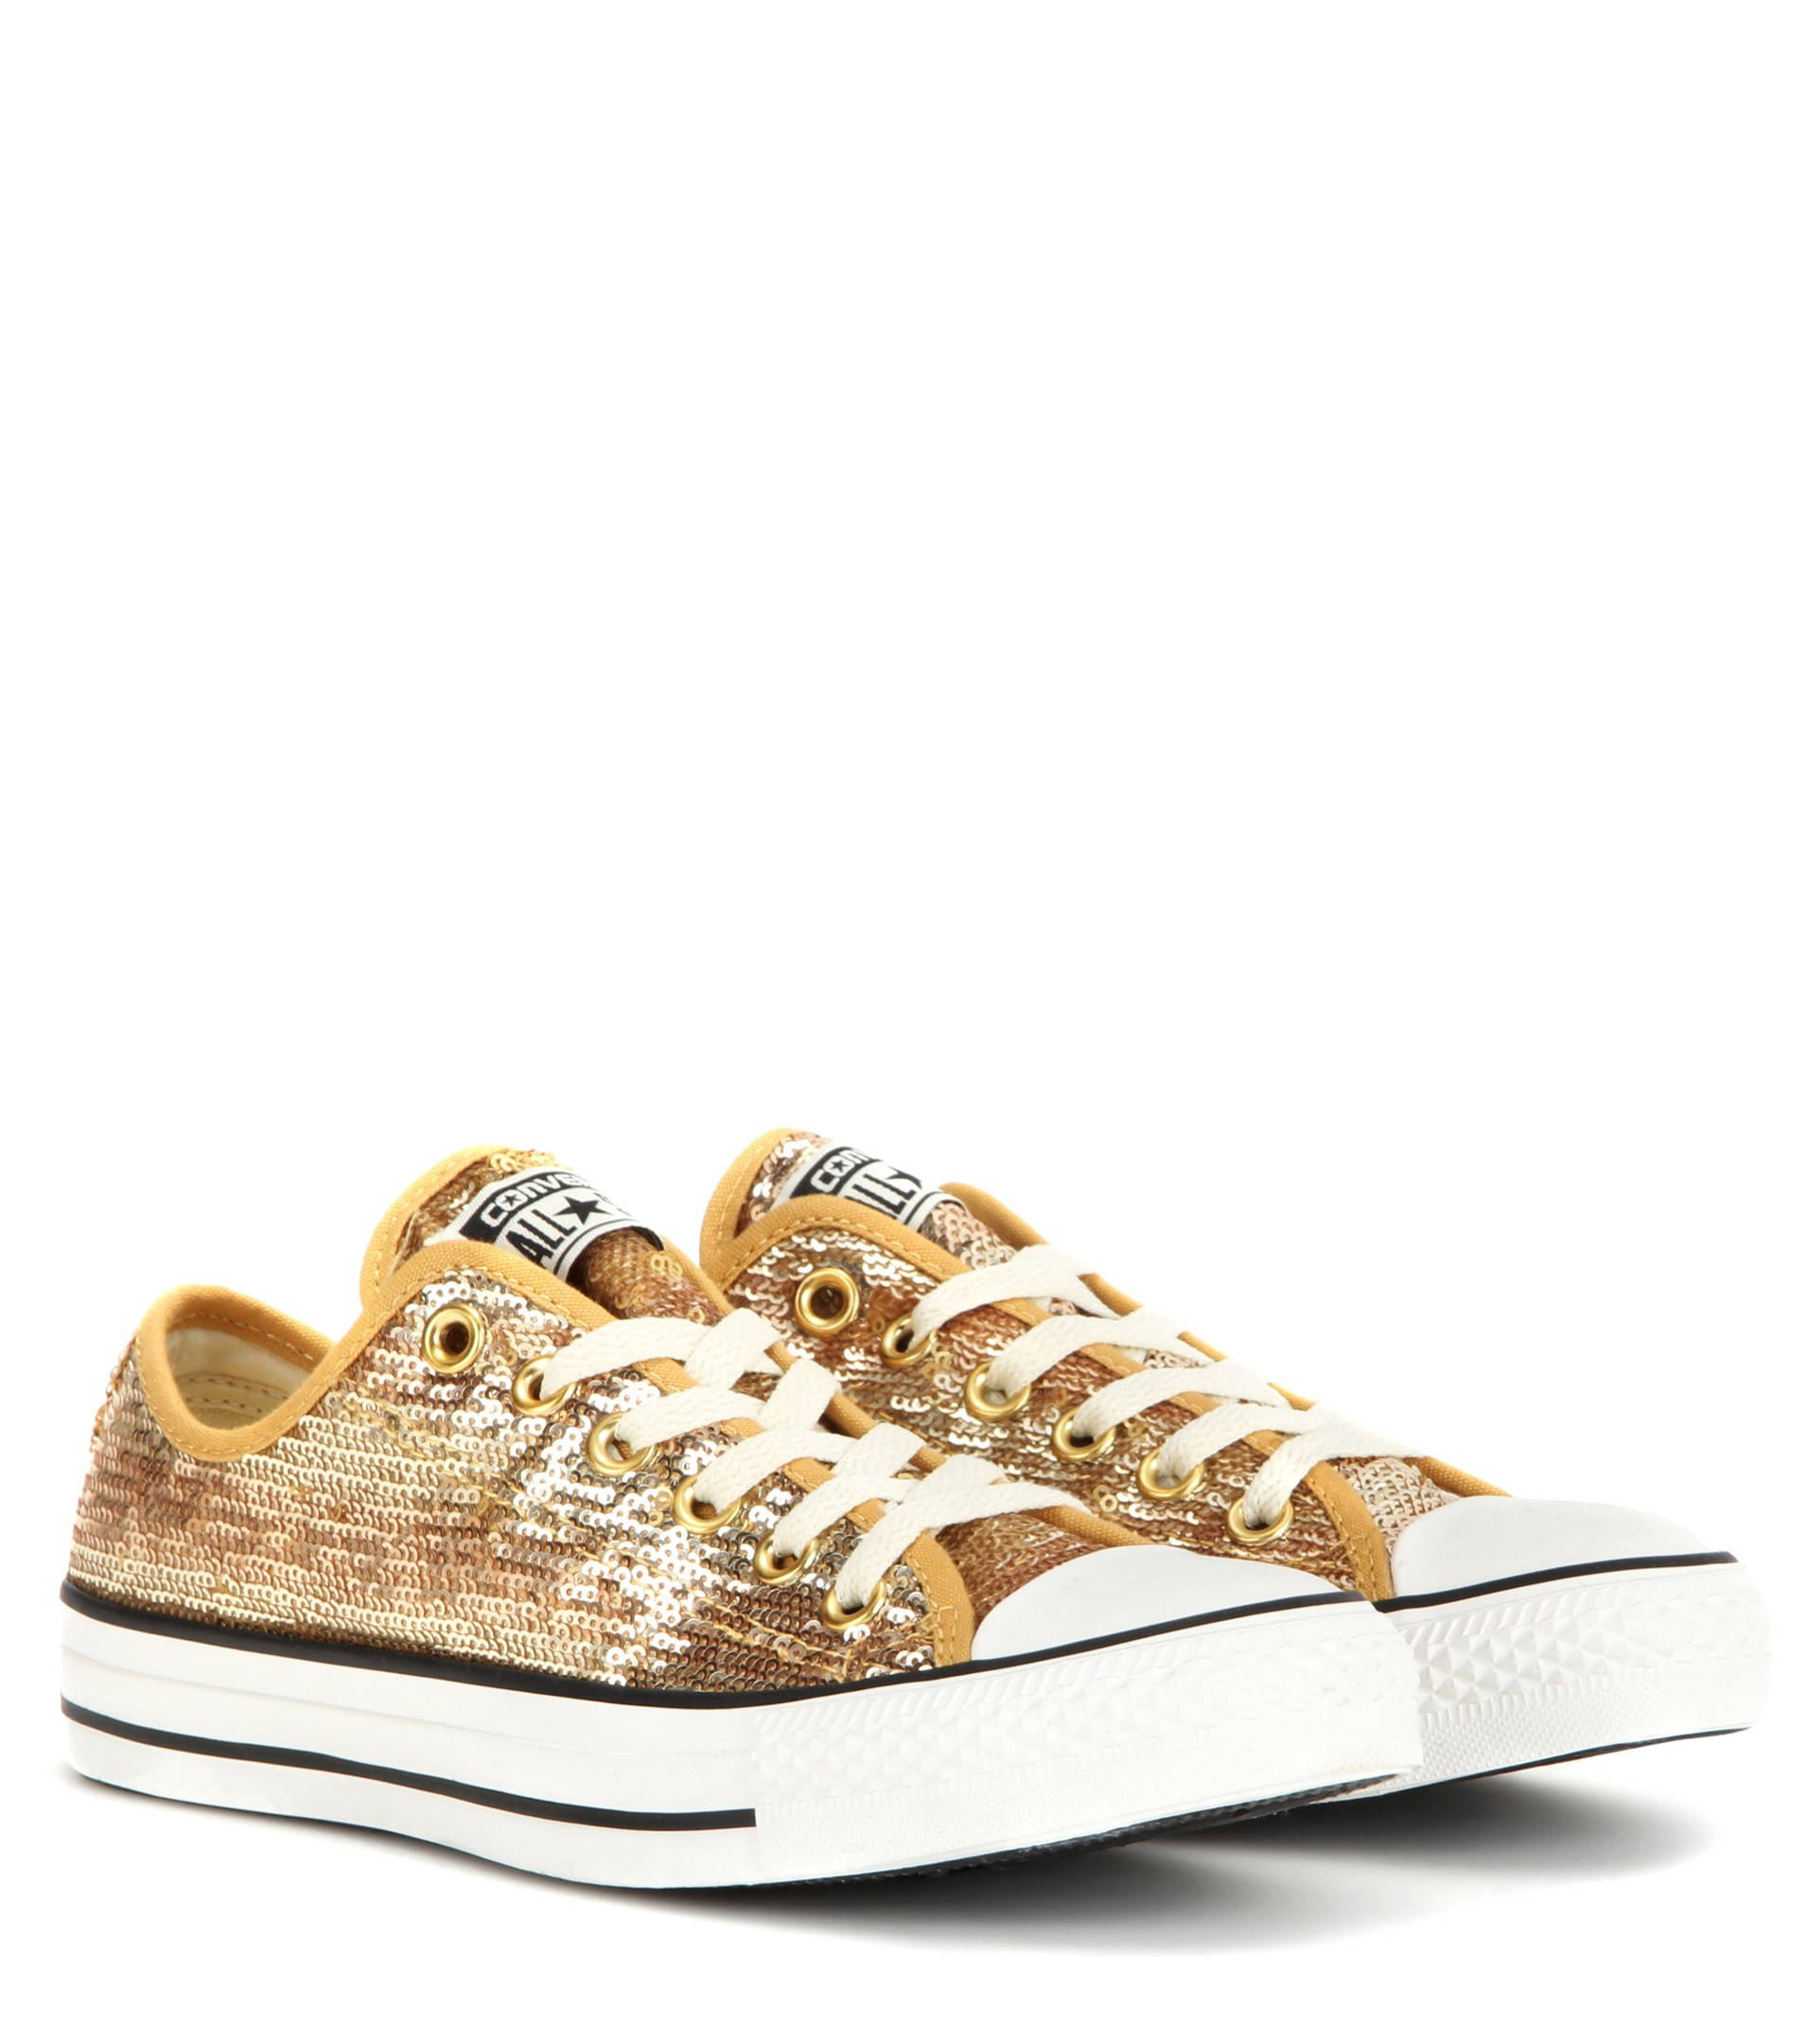 sale retailer b2e15 96987 Converse Chuck Taylor All Star Sequin Sneakers in Gold/White ...